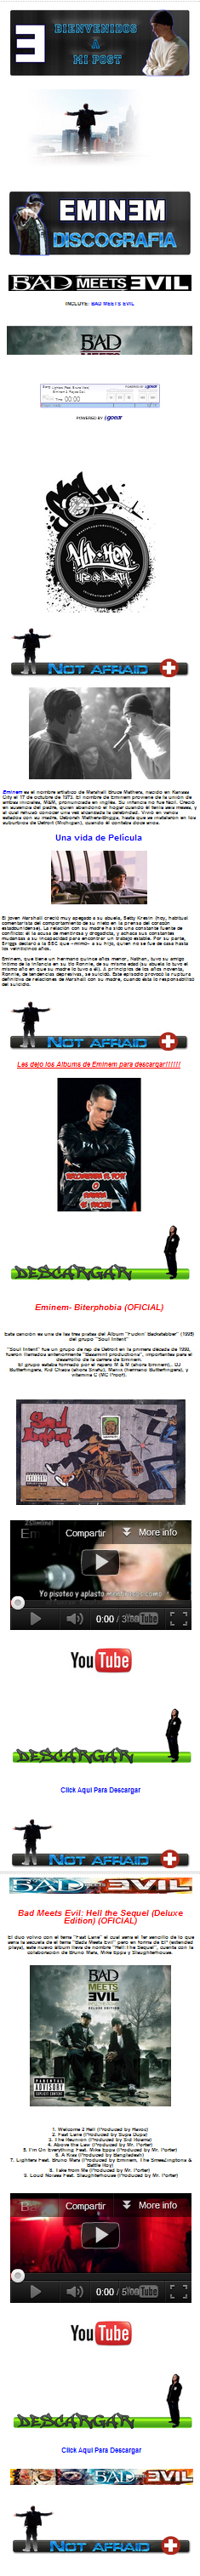 Descargar Discografia de Eminem [mp3][Mediafire]